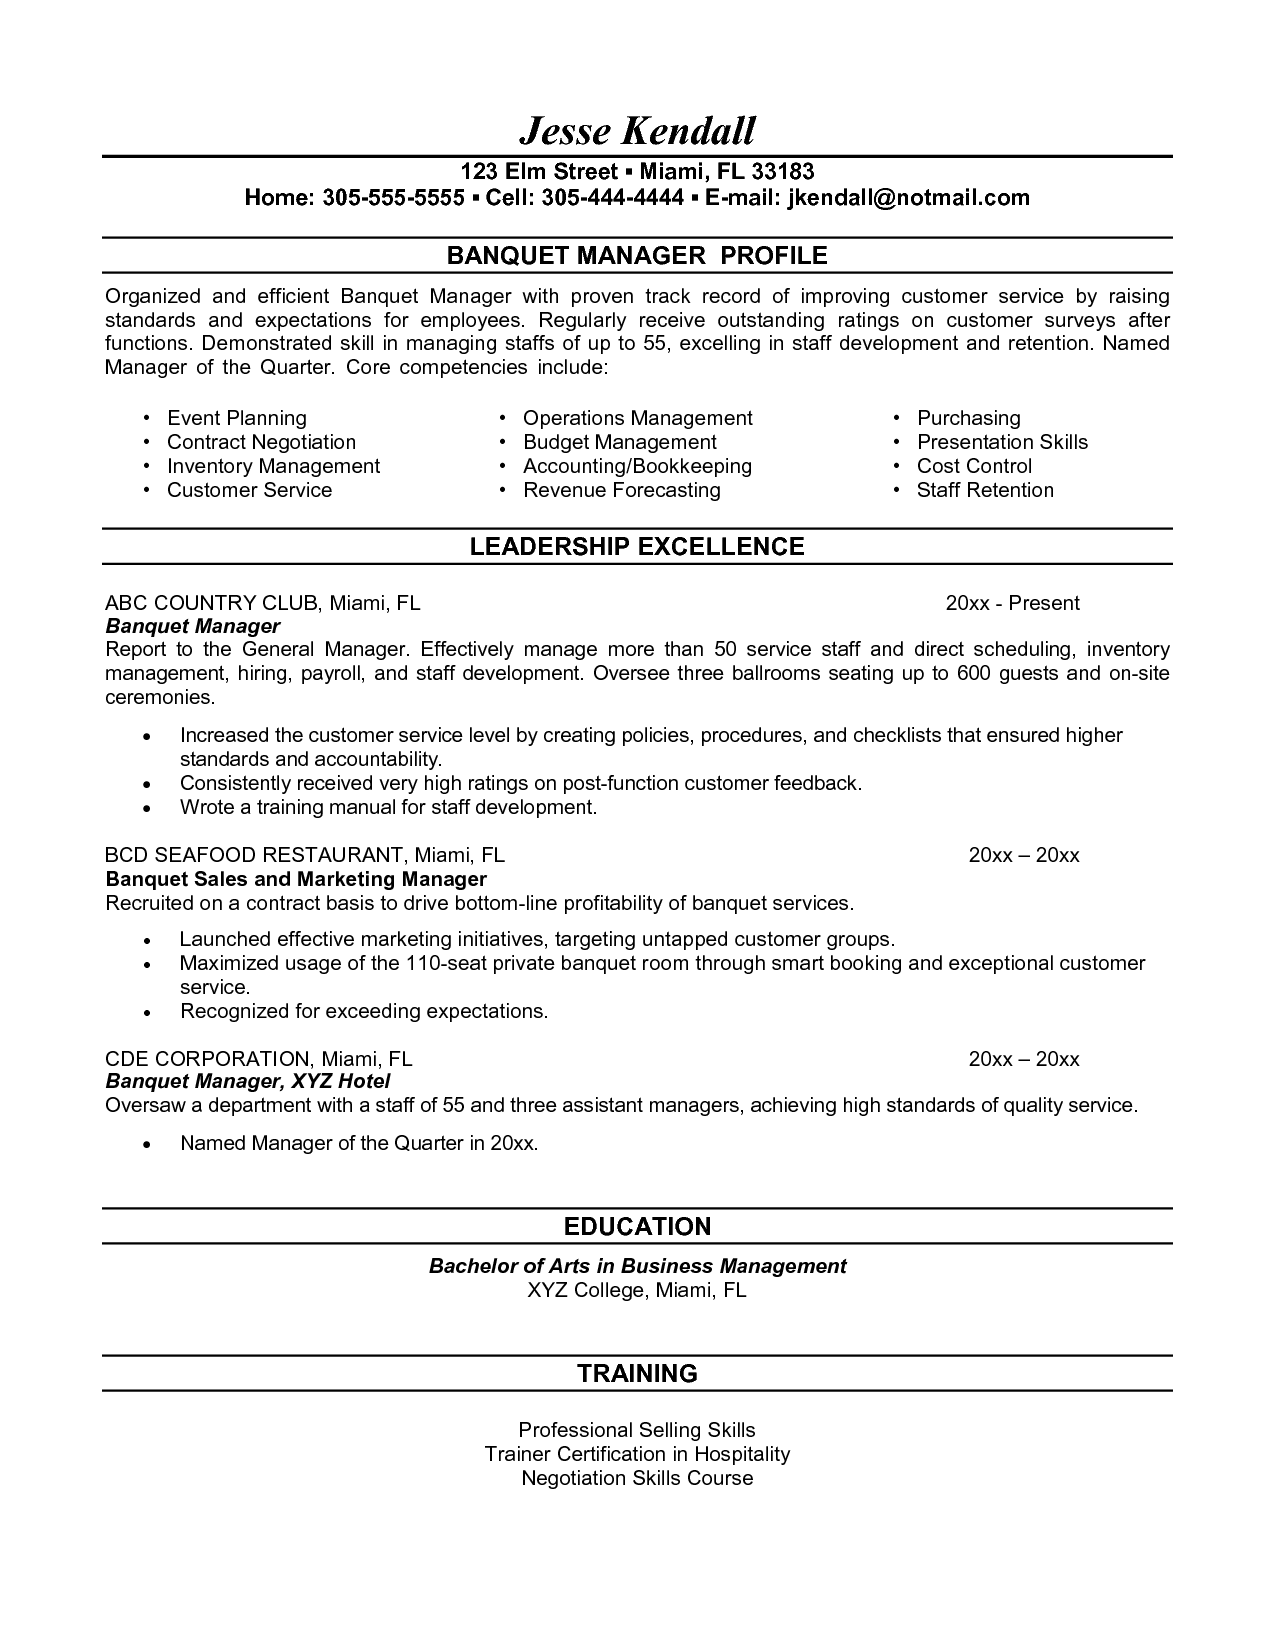 special education law jobs teacher sample resume exles skills best free home design idea inspiration - Special Education Resume Samples